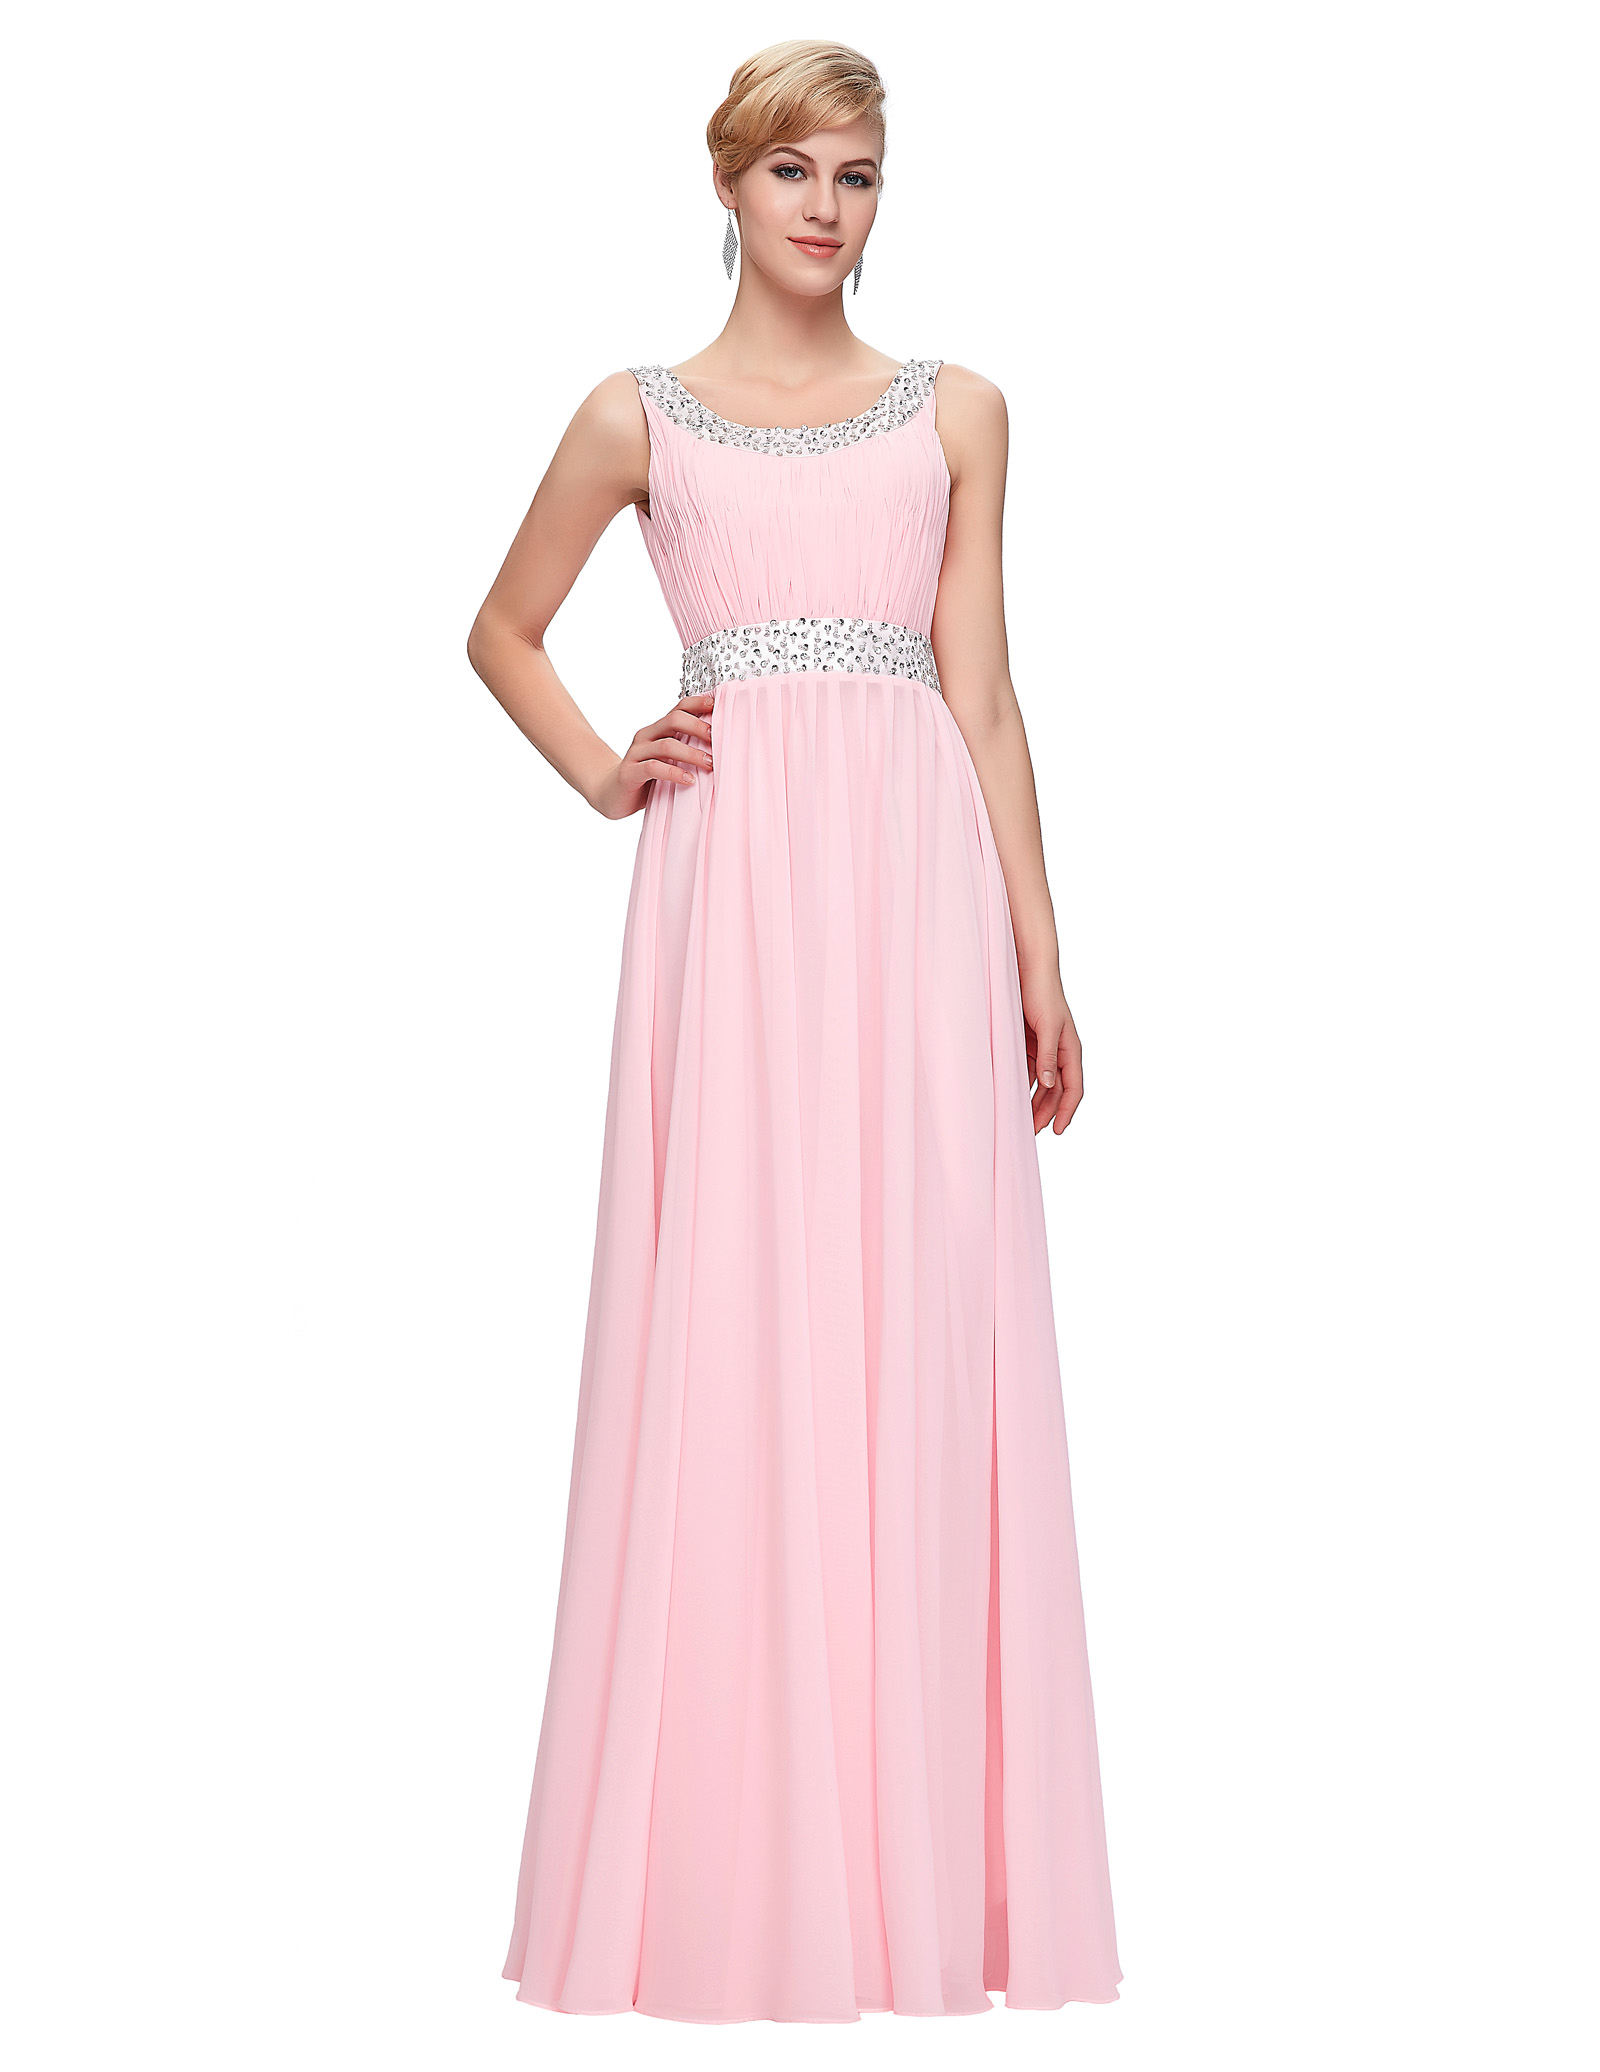 Prom Dress Kansas City - Vosoi.com